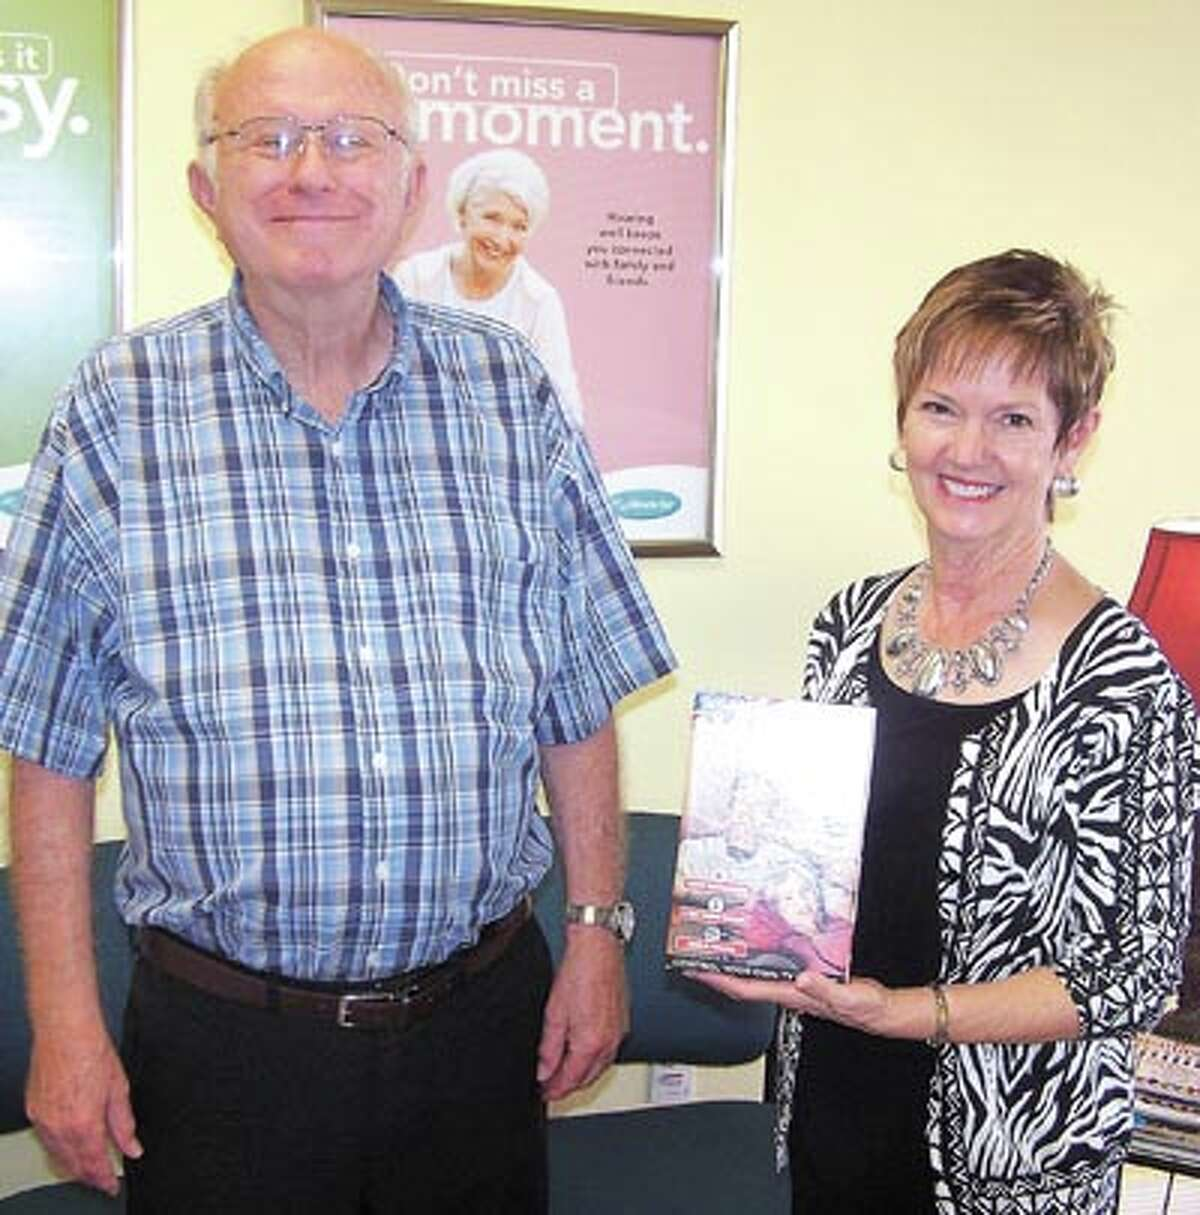 David Lloyd is excited to have won the drawing for the TV Ears TV listening system from Miracle-Ear at the recent Healthy U health fair. If you are having trouble hearing and would like to hear better, call 520-5566 in Midland to make an appointment to see Kay Scroggins.